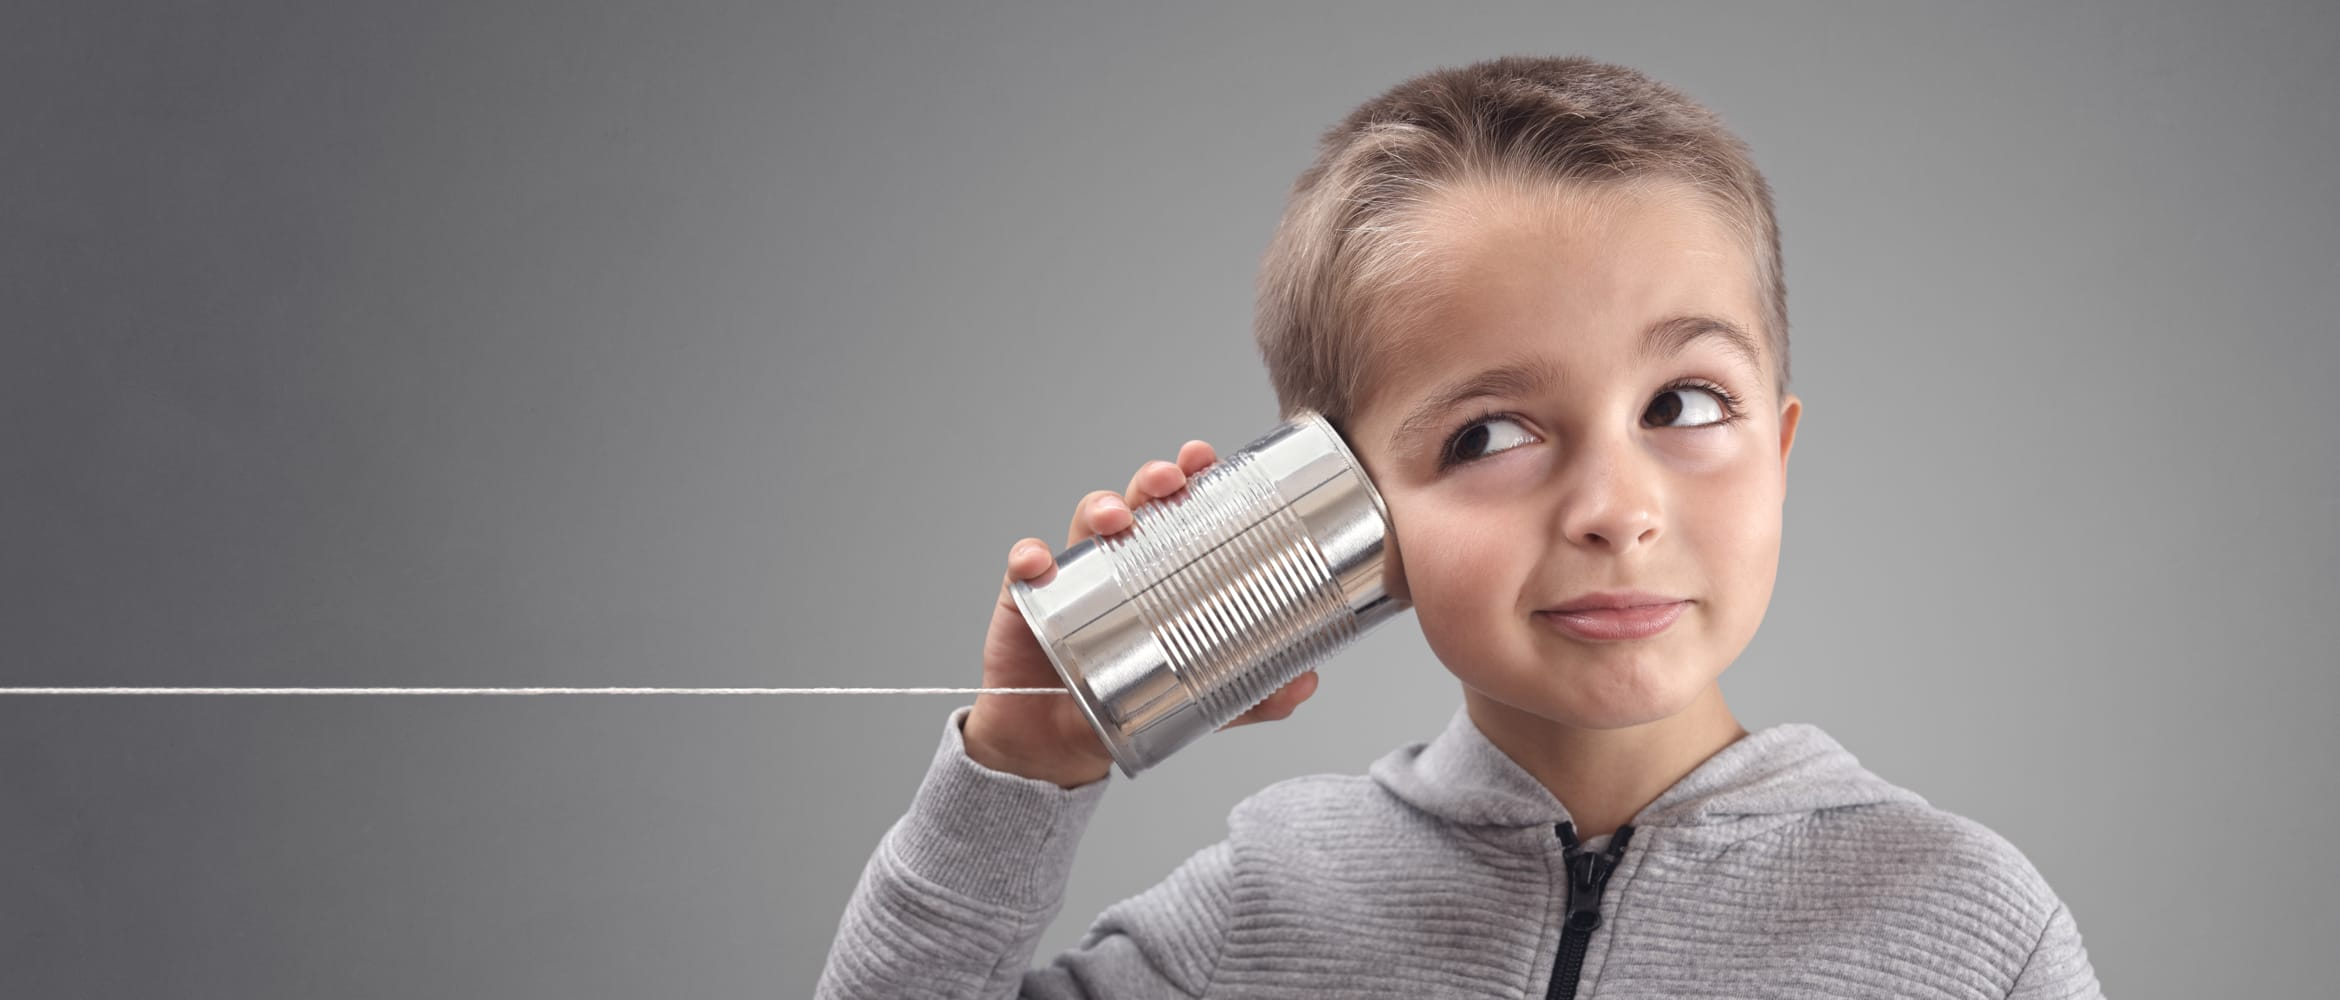 Young boy with can and string to his ear, highlighting the principles of remote working